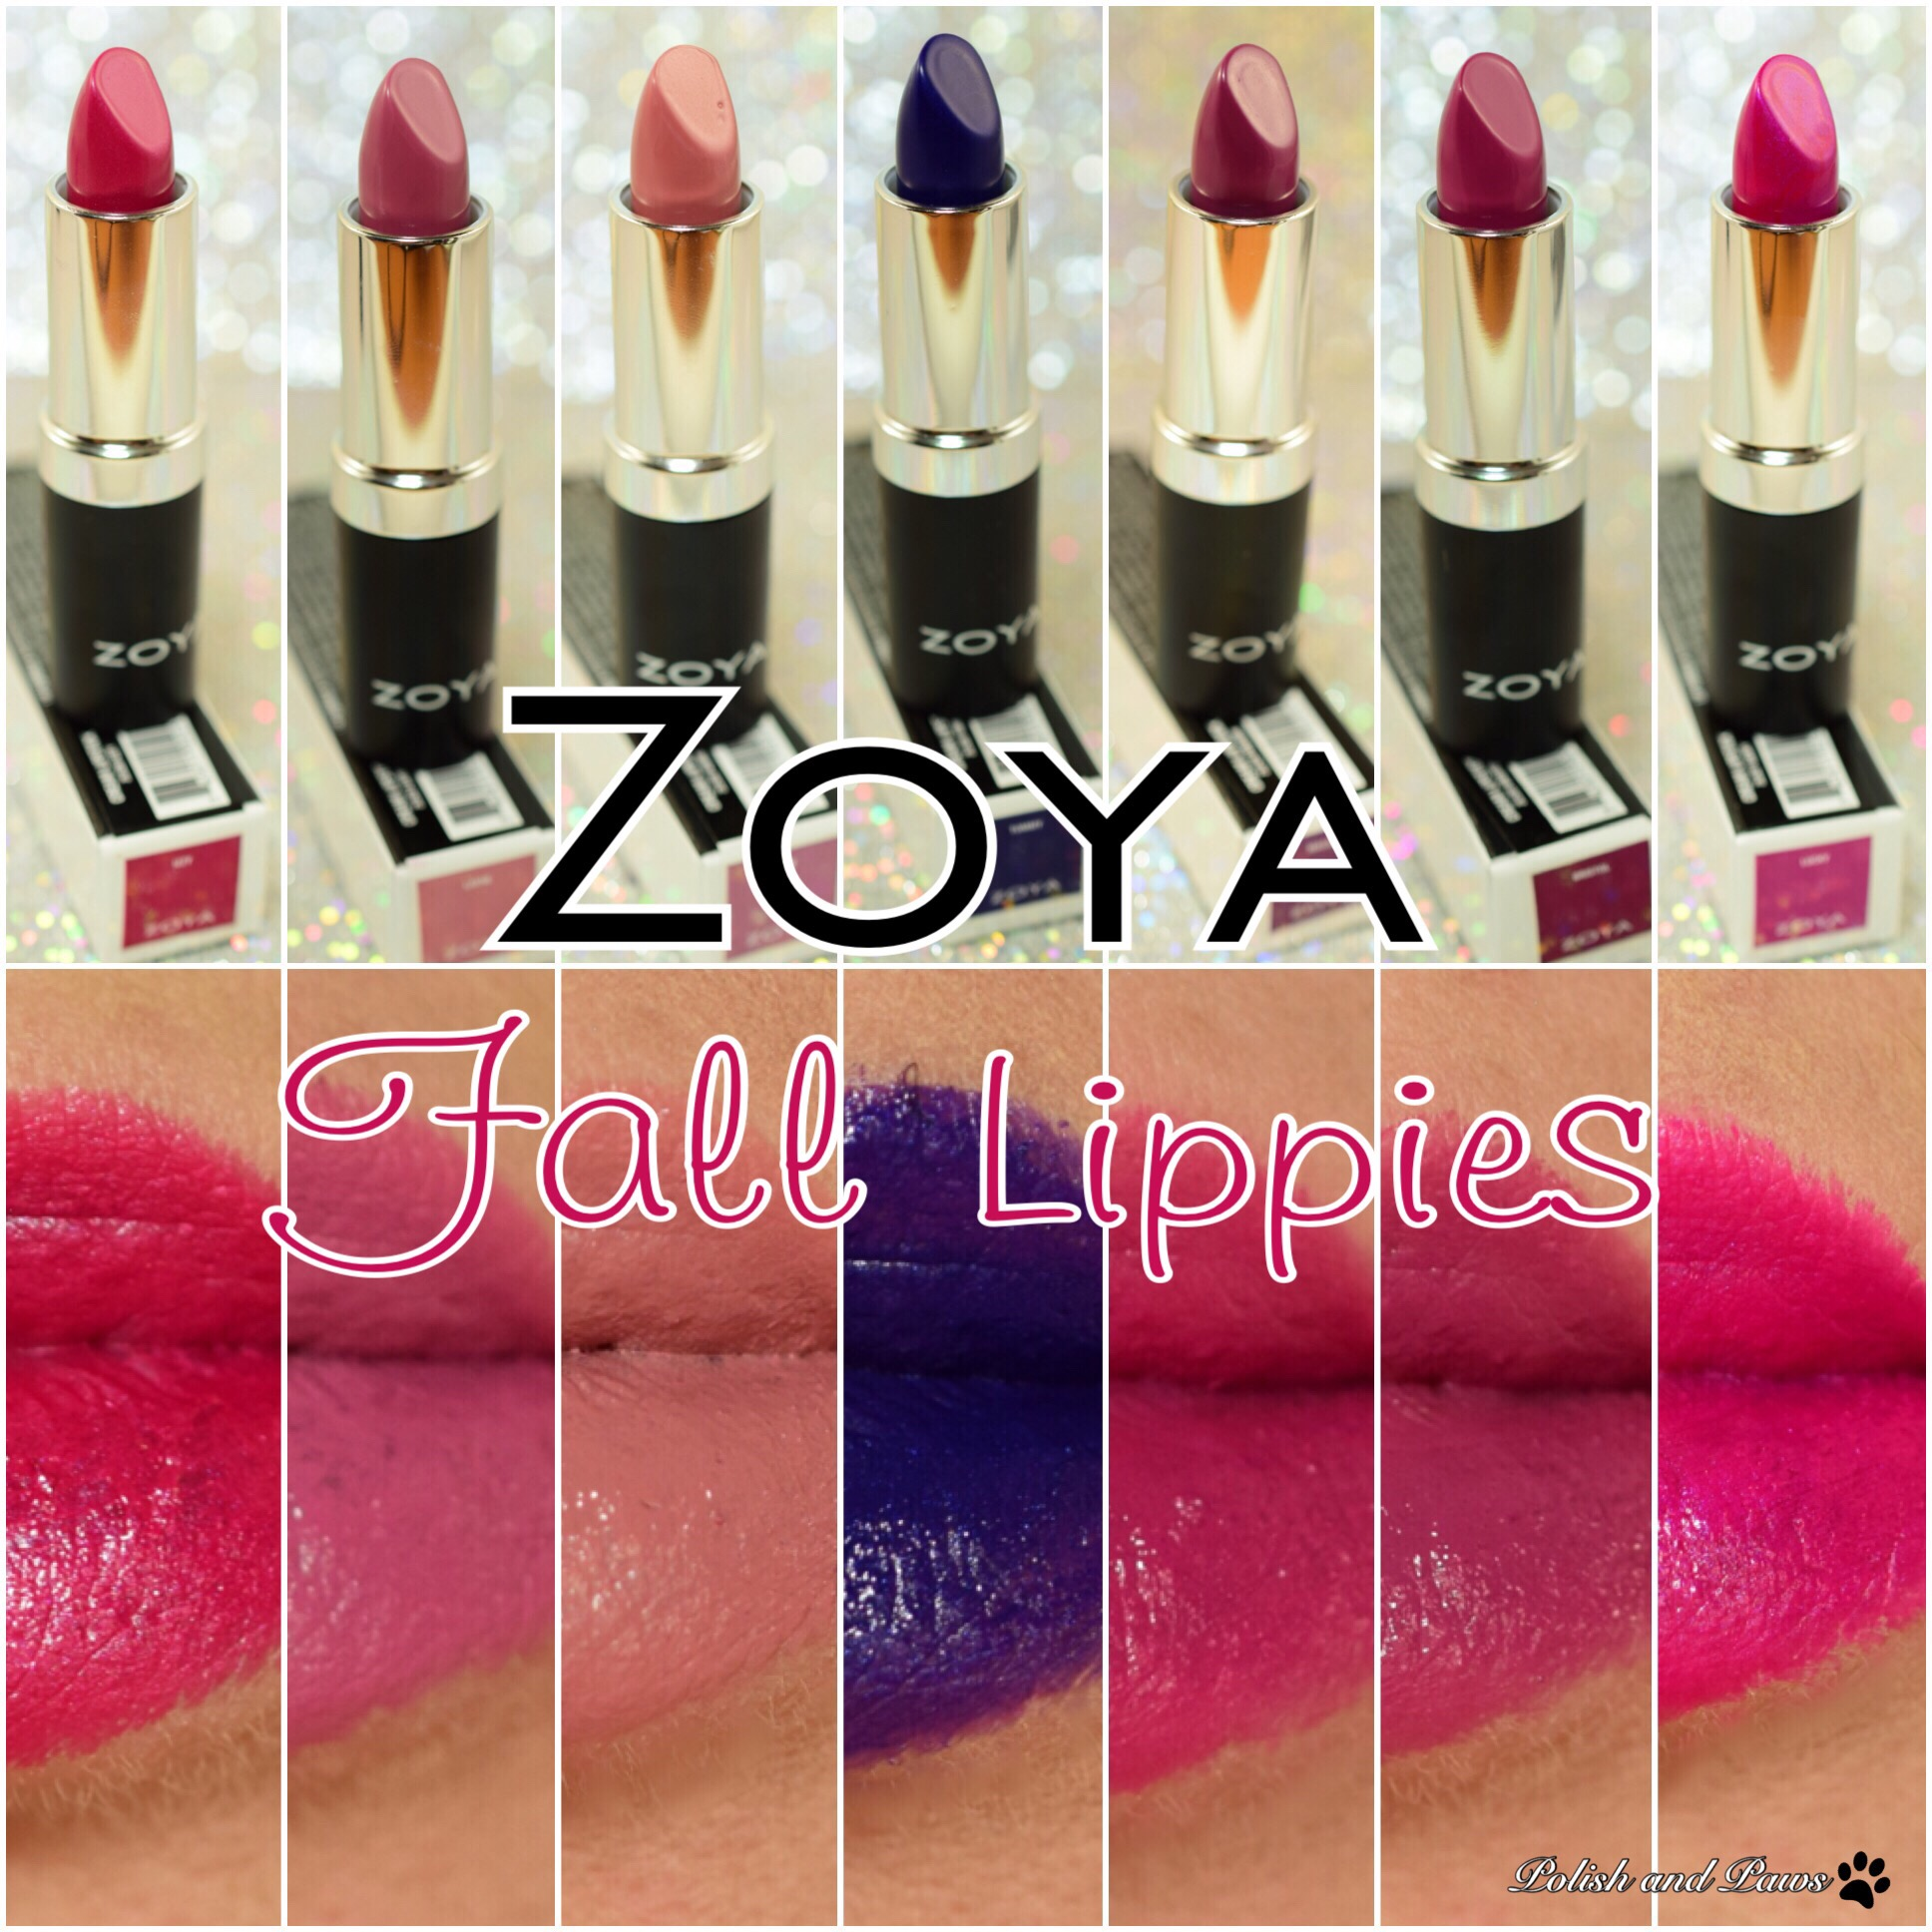 Zoya Lipstick Hydrating Cream